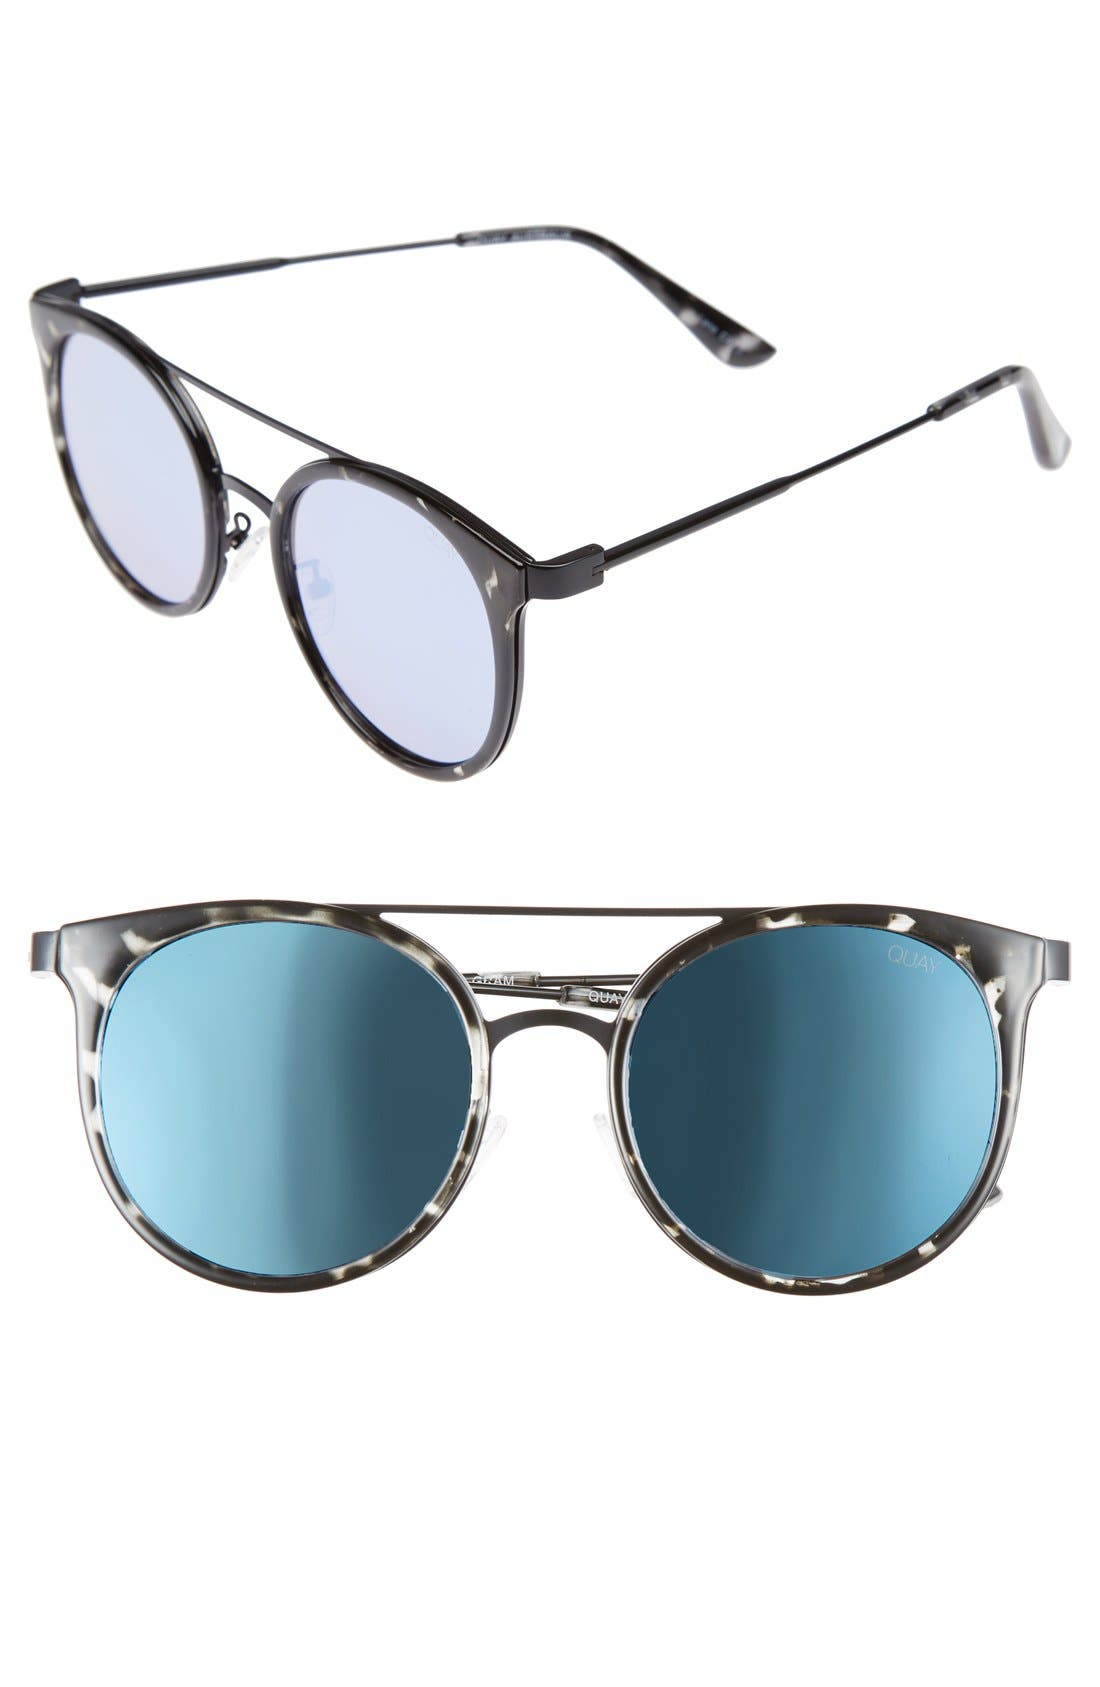 Kandy Gram 51mm Round Sunglasses,                         Main,                         color, Black Tort/ Blue